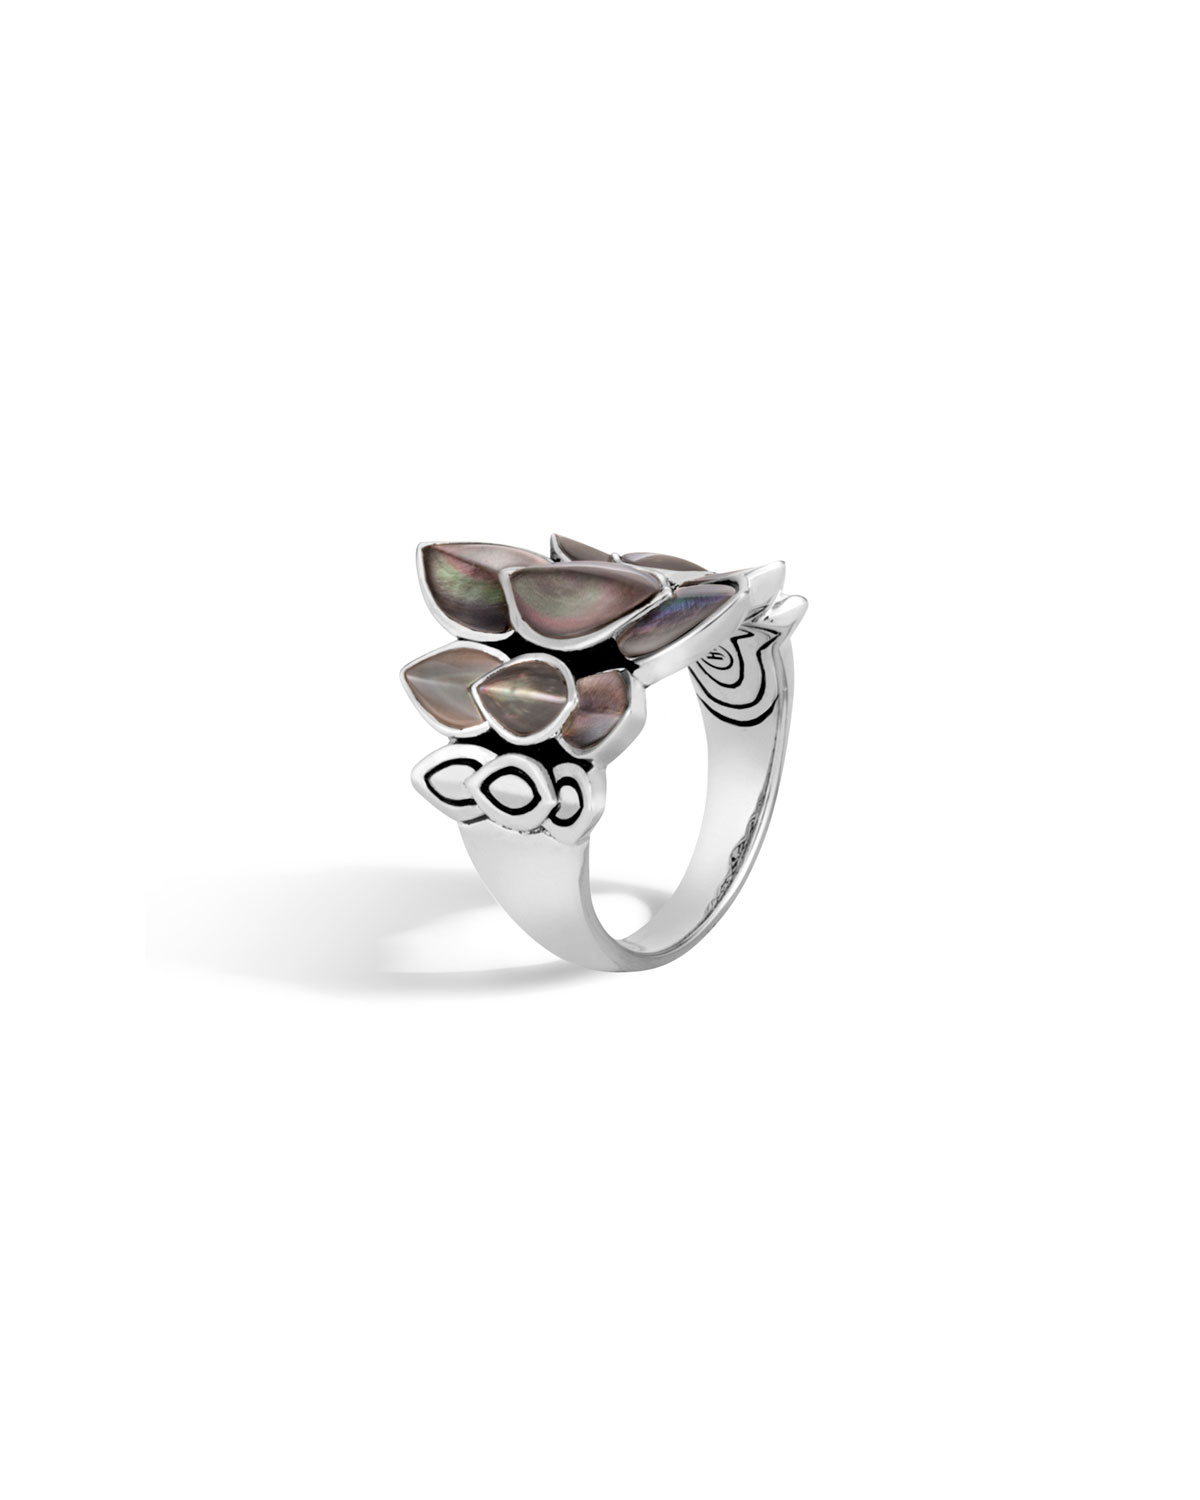 05249631ab7fe Legends Naga 21mm Saddle Ring w/ Mother-of-Pearl, Size 6